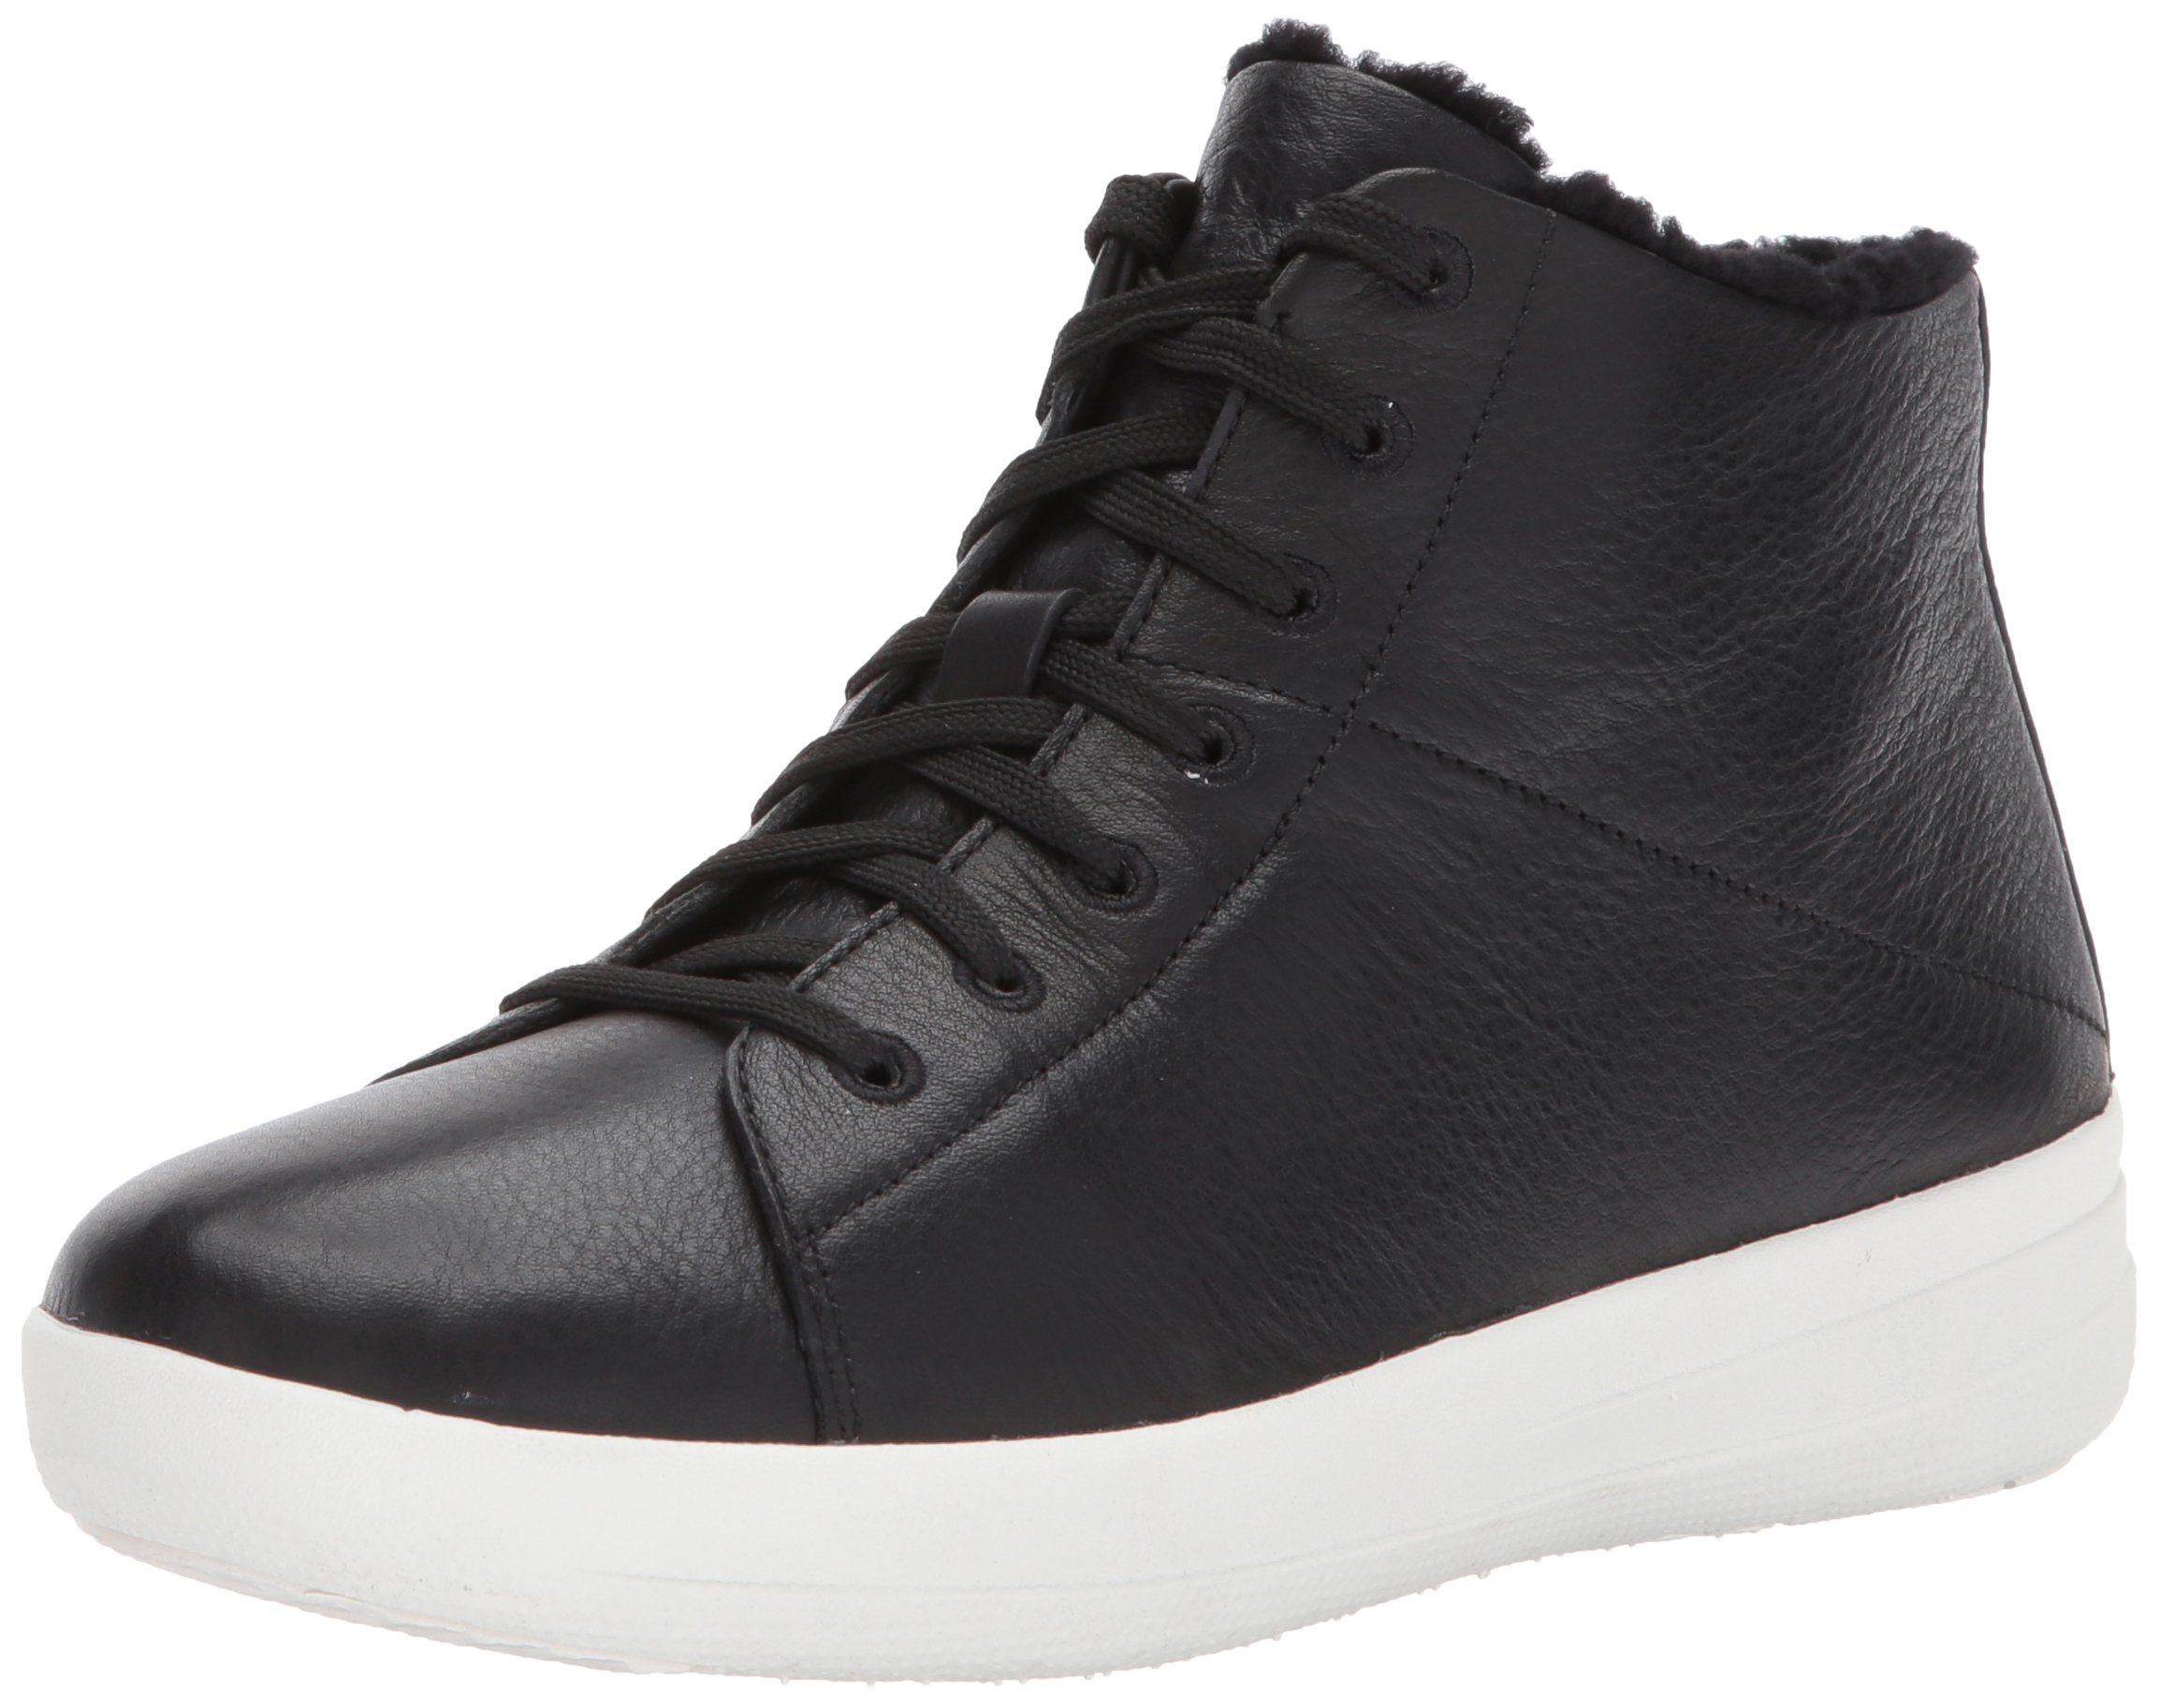 FitFlop Women's F-Sporty Sneakerboots In Leather Sneaker, Black, 5 M US